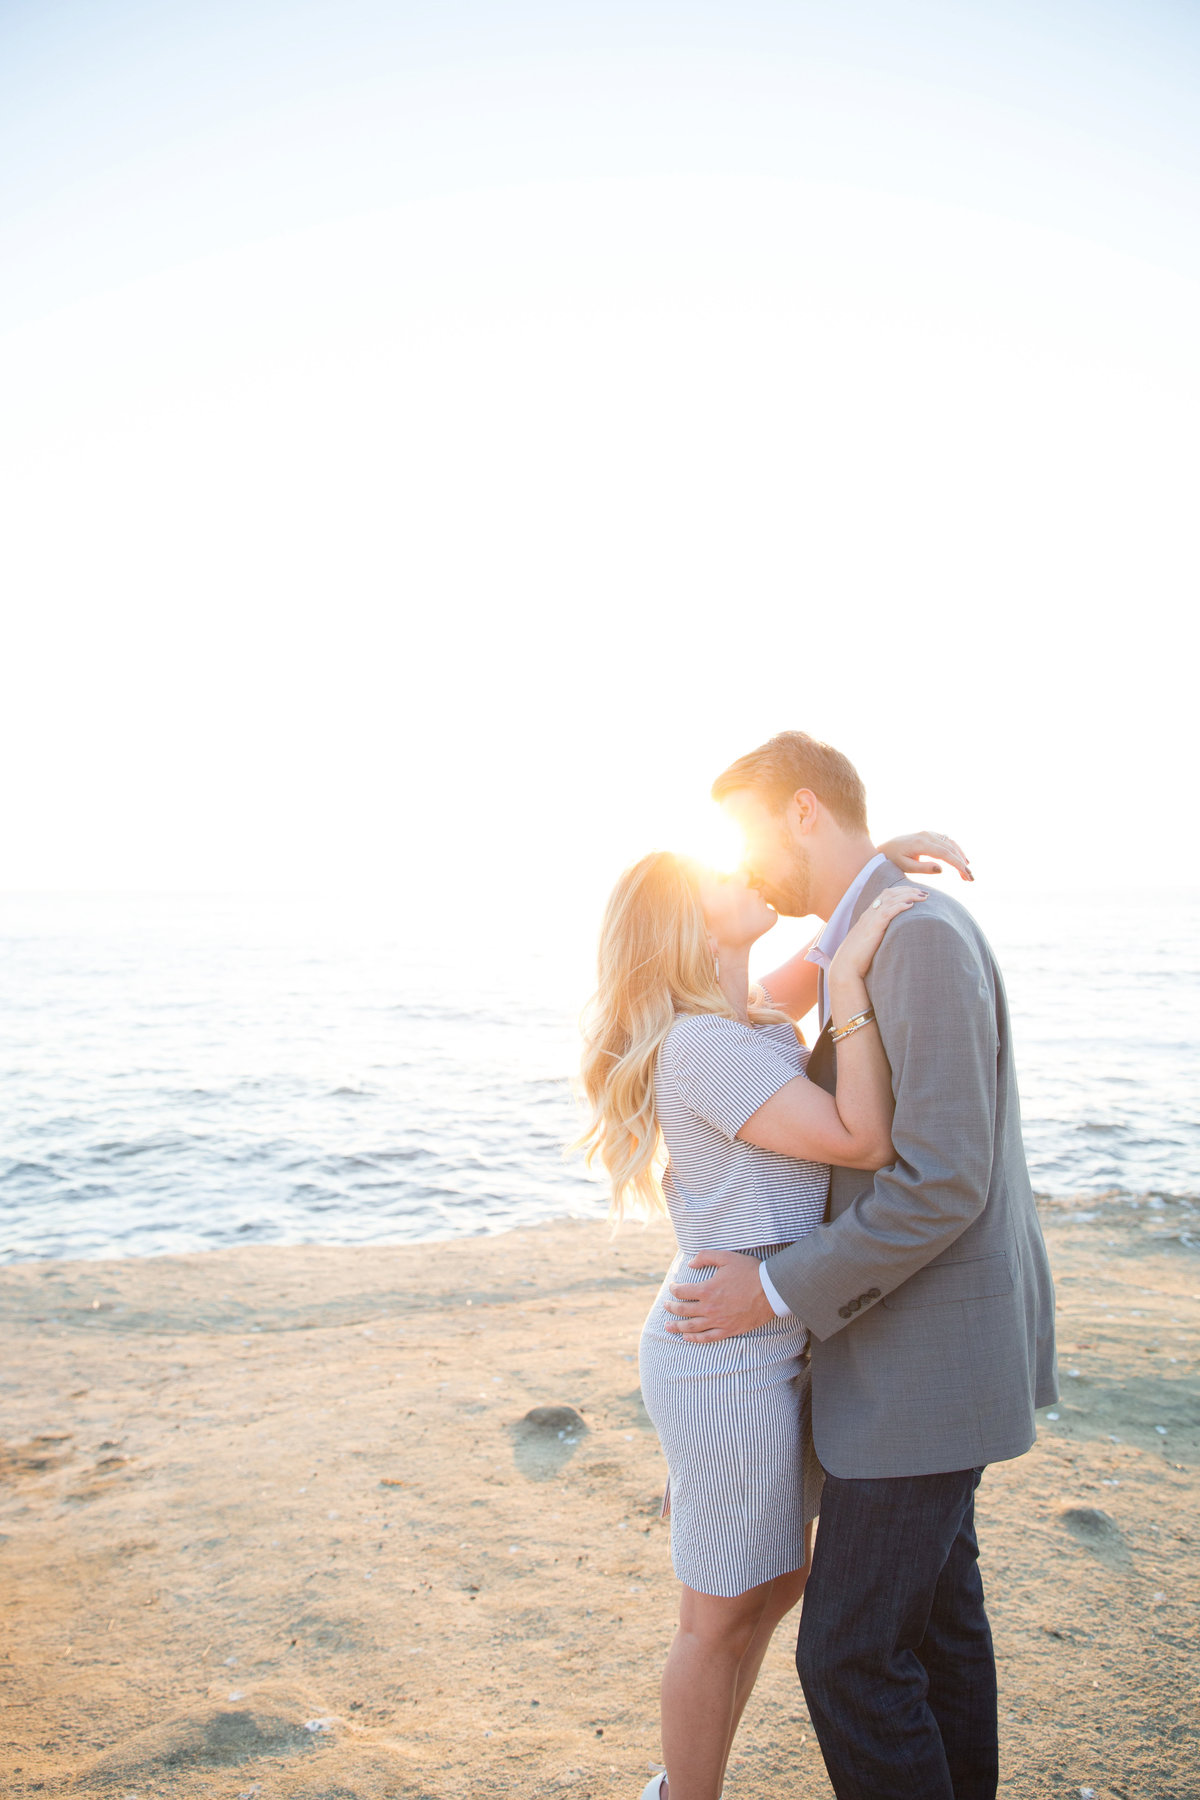 babsie-ly-photography-surprise-proposal-photographer-san-diego-california-sunset-cliffs-epic-scenery-012